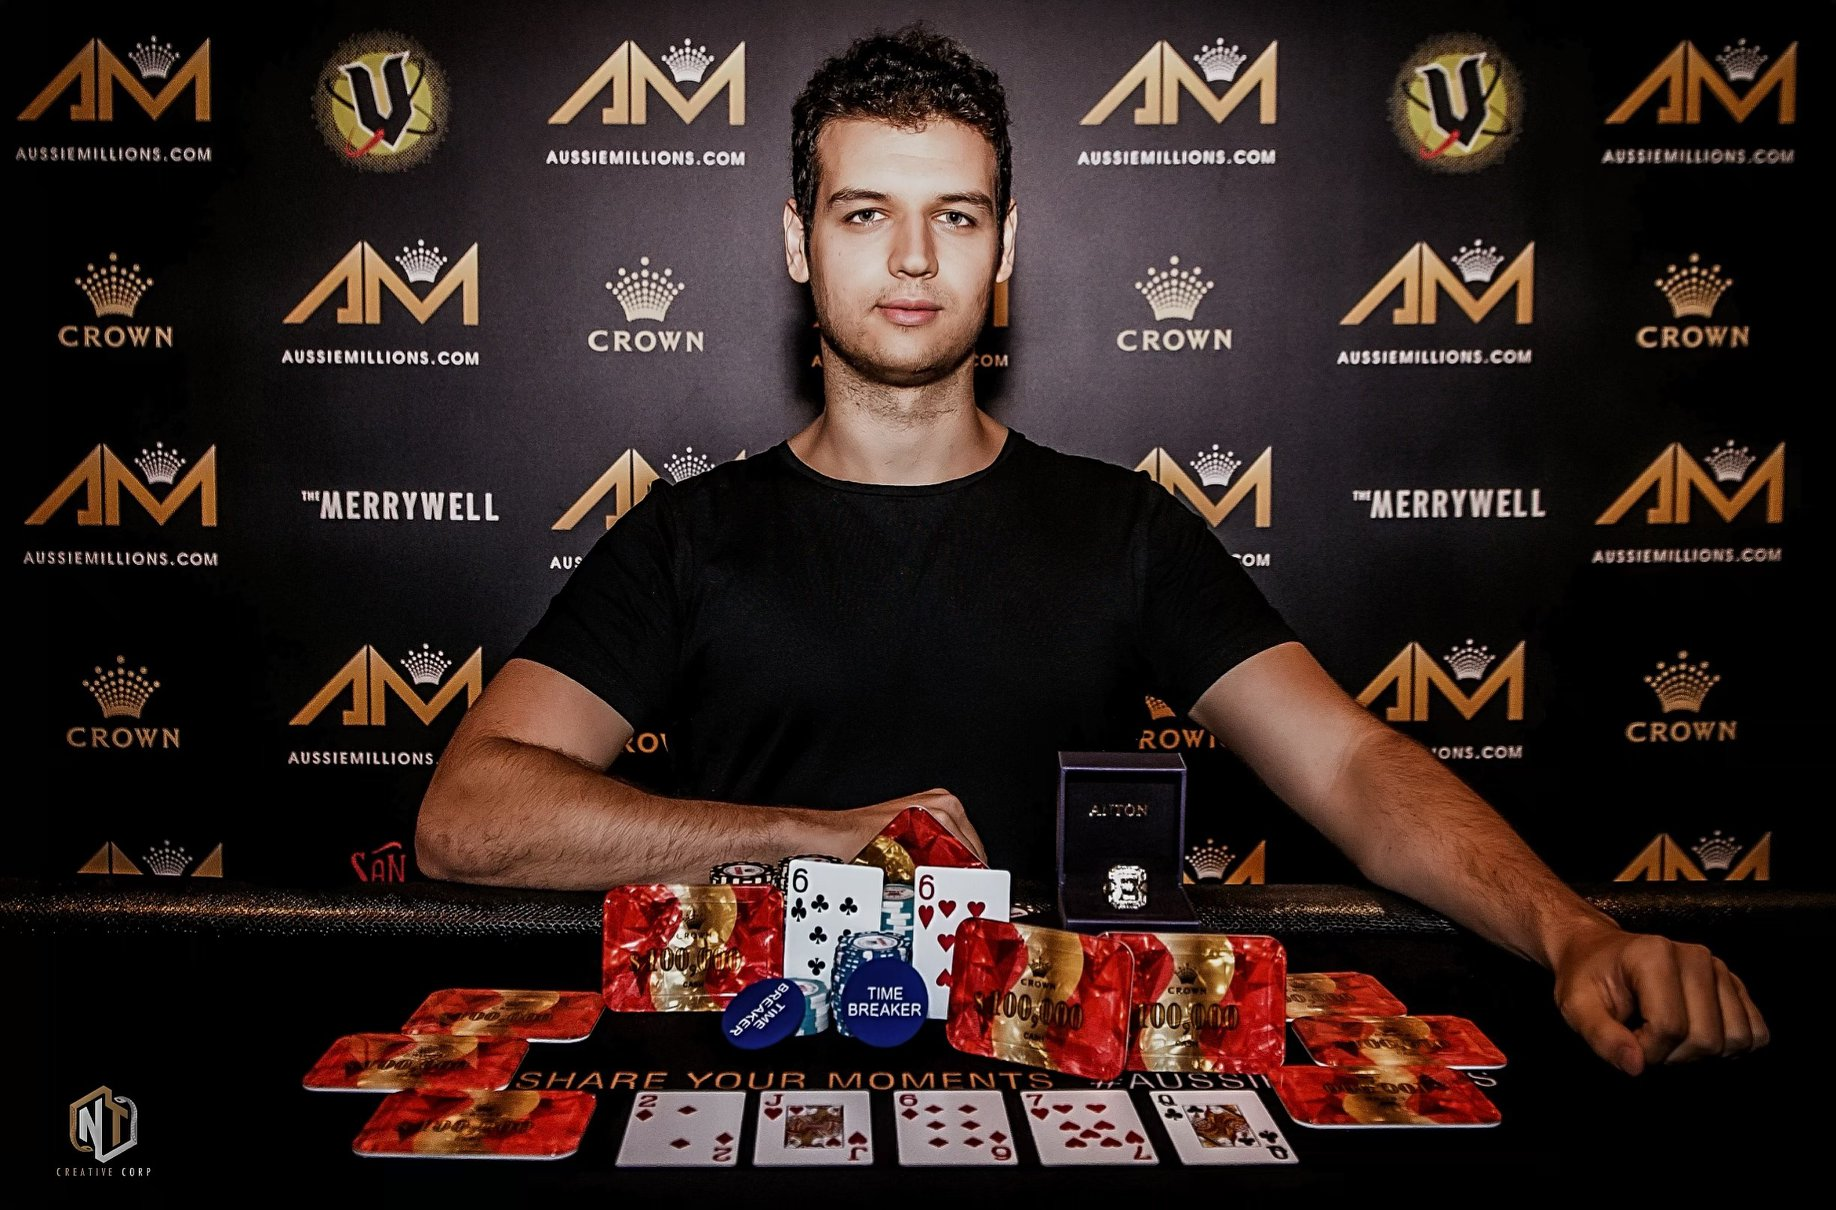 Stellar first half of 2020 for Australia's Michael Addamo in the High Roller circuit